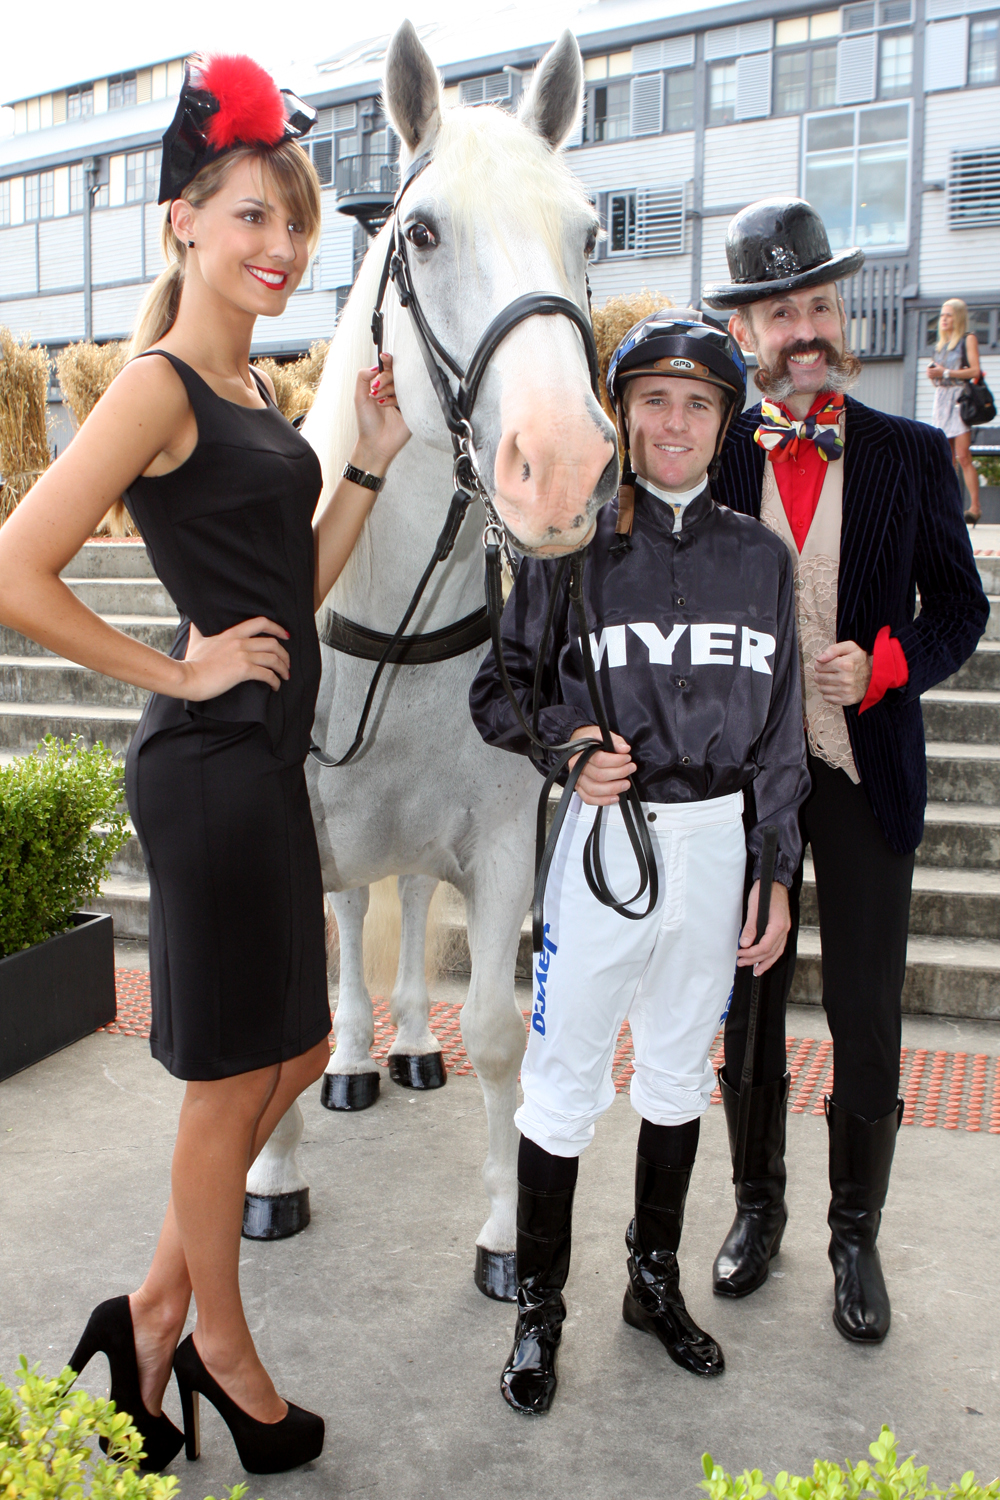 file laura dunovic  dollar  jockey  richard nylon  6837629500  jpg